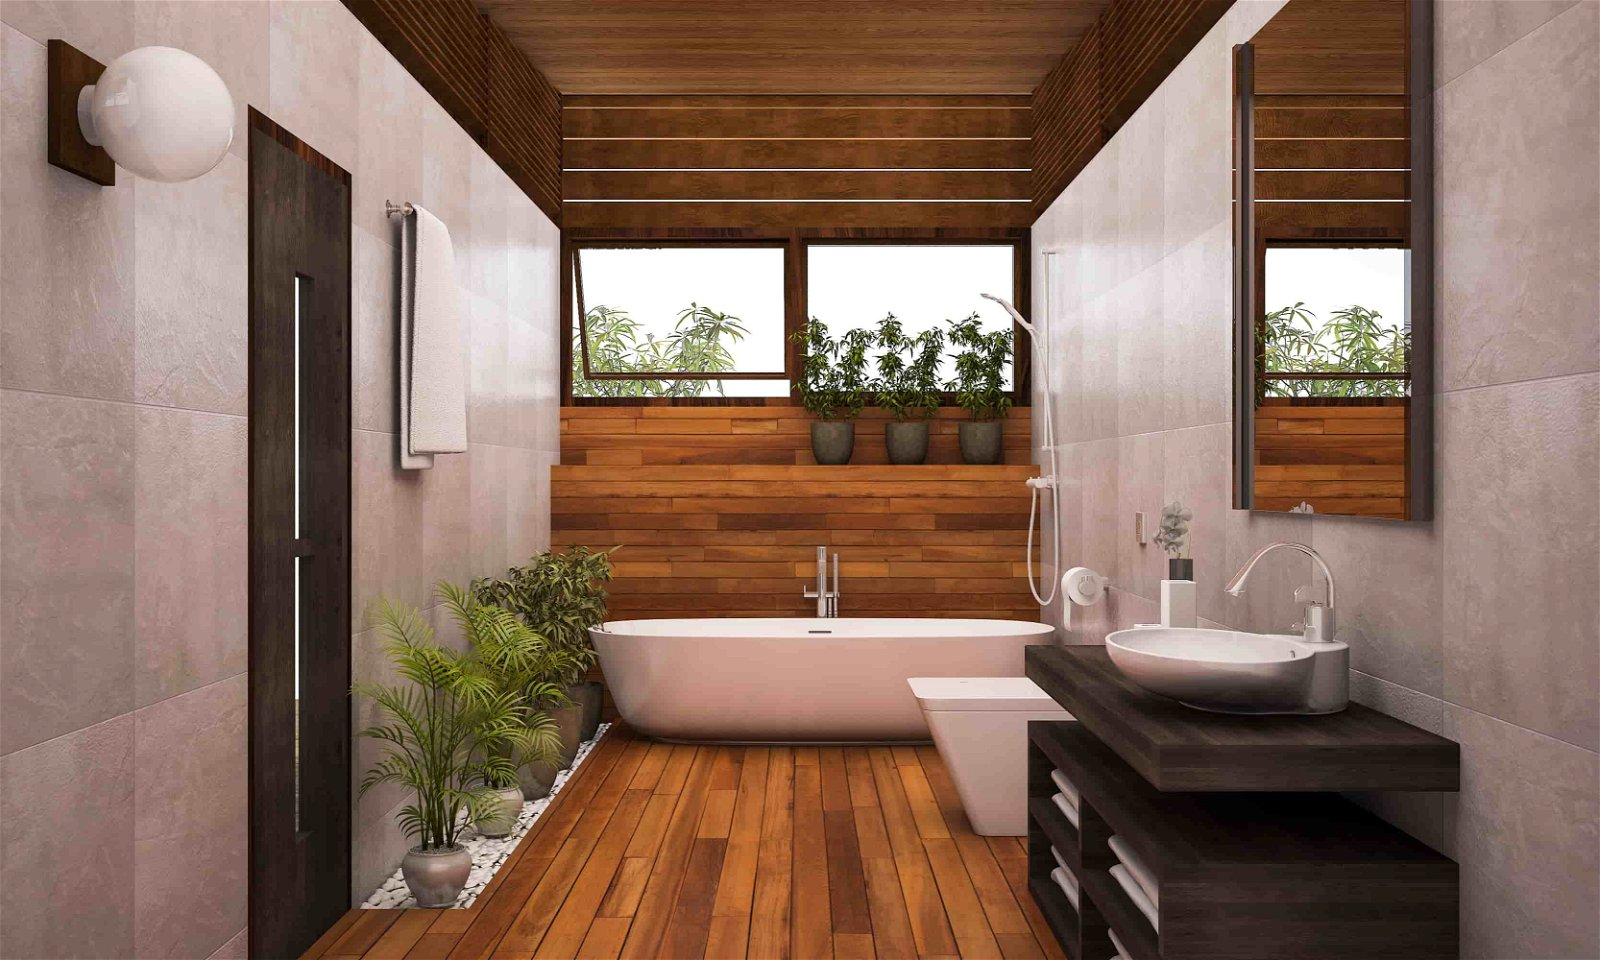 Contemporary Wood Bathroom with Plants